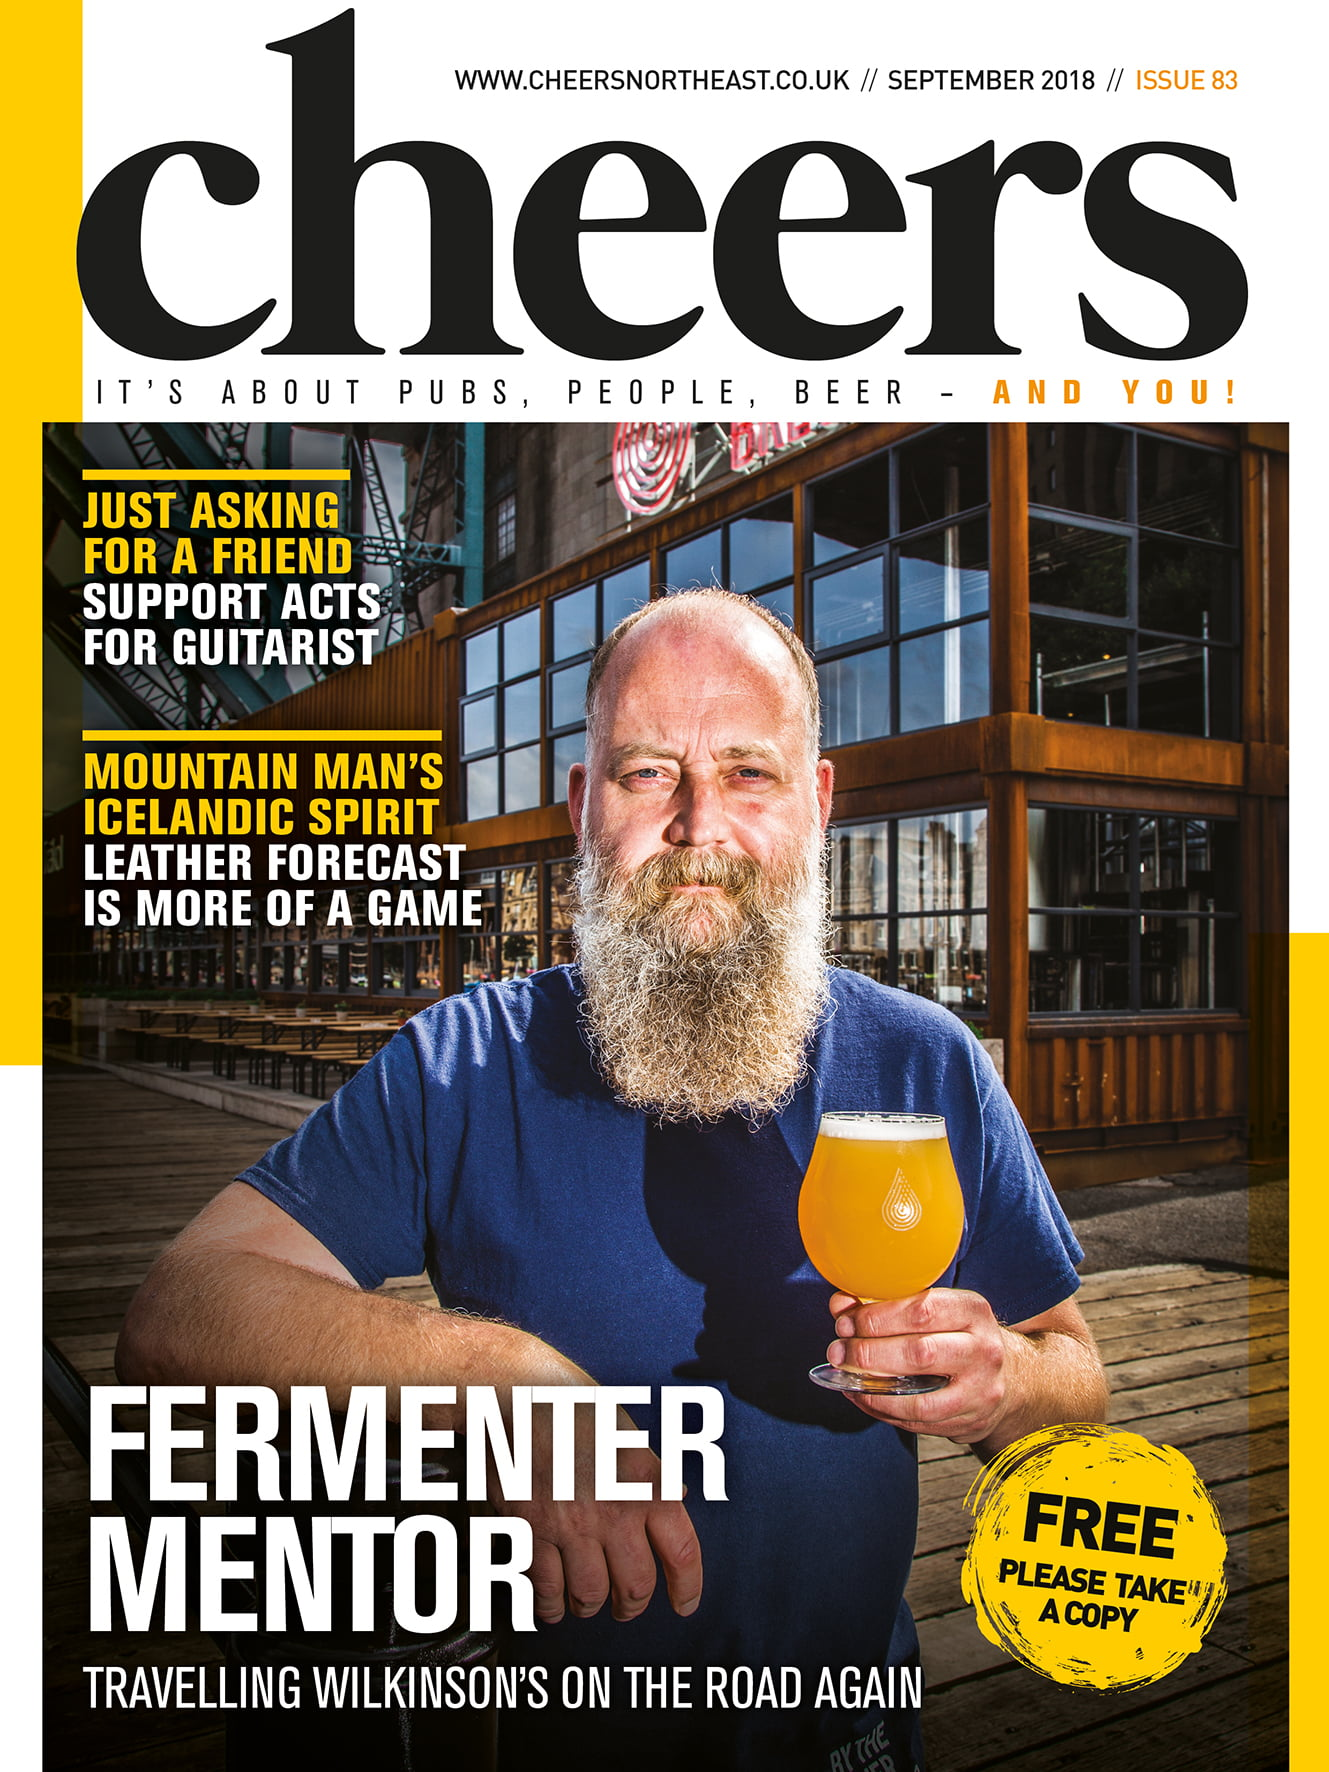 Cheers issue 83